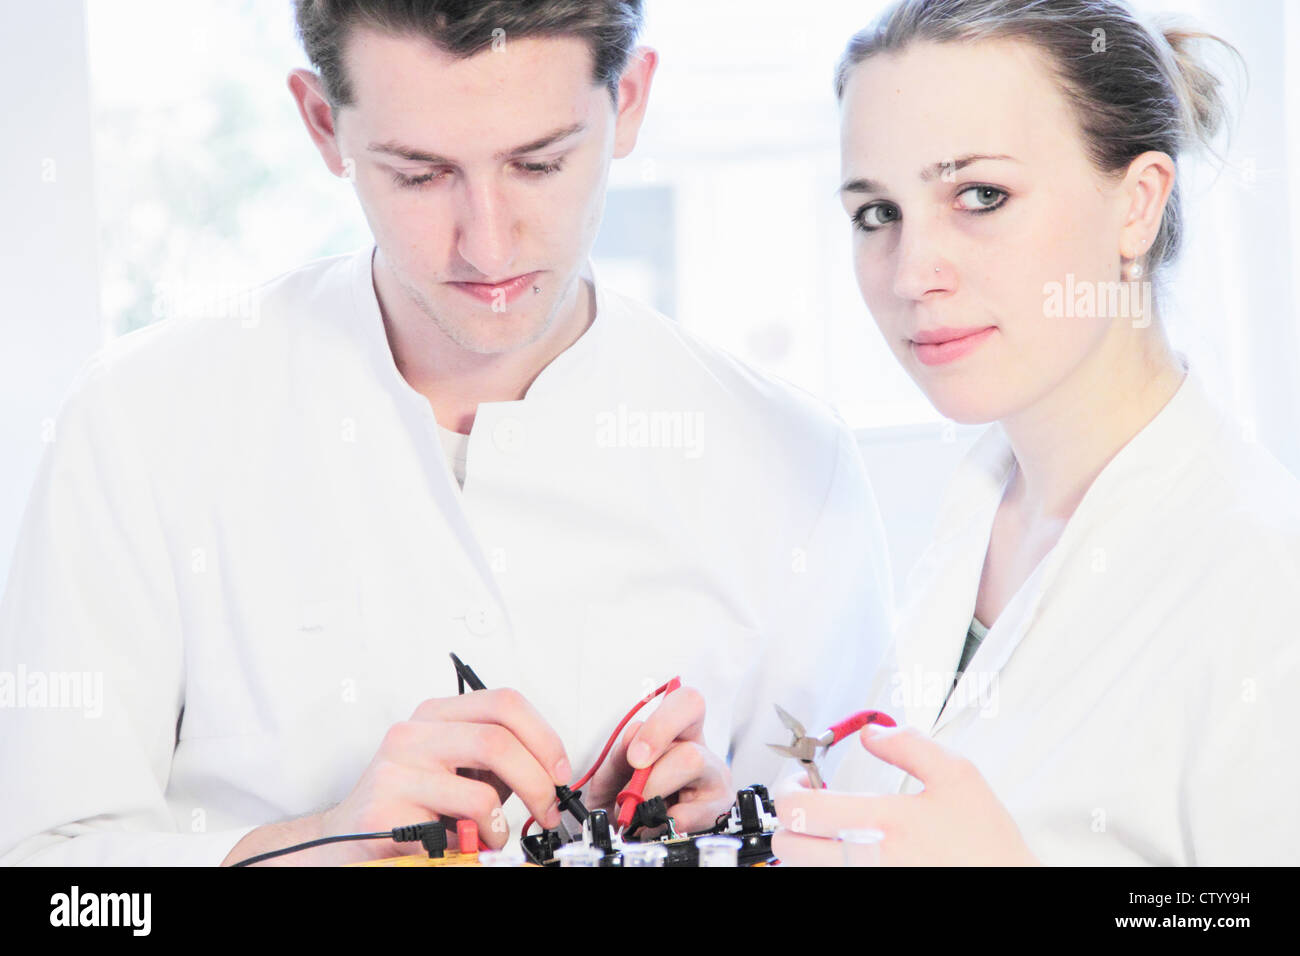 Students working in science lab - Stock Image